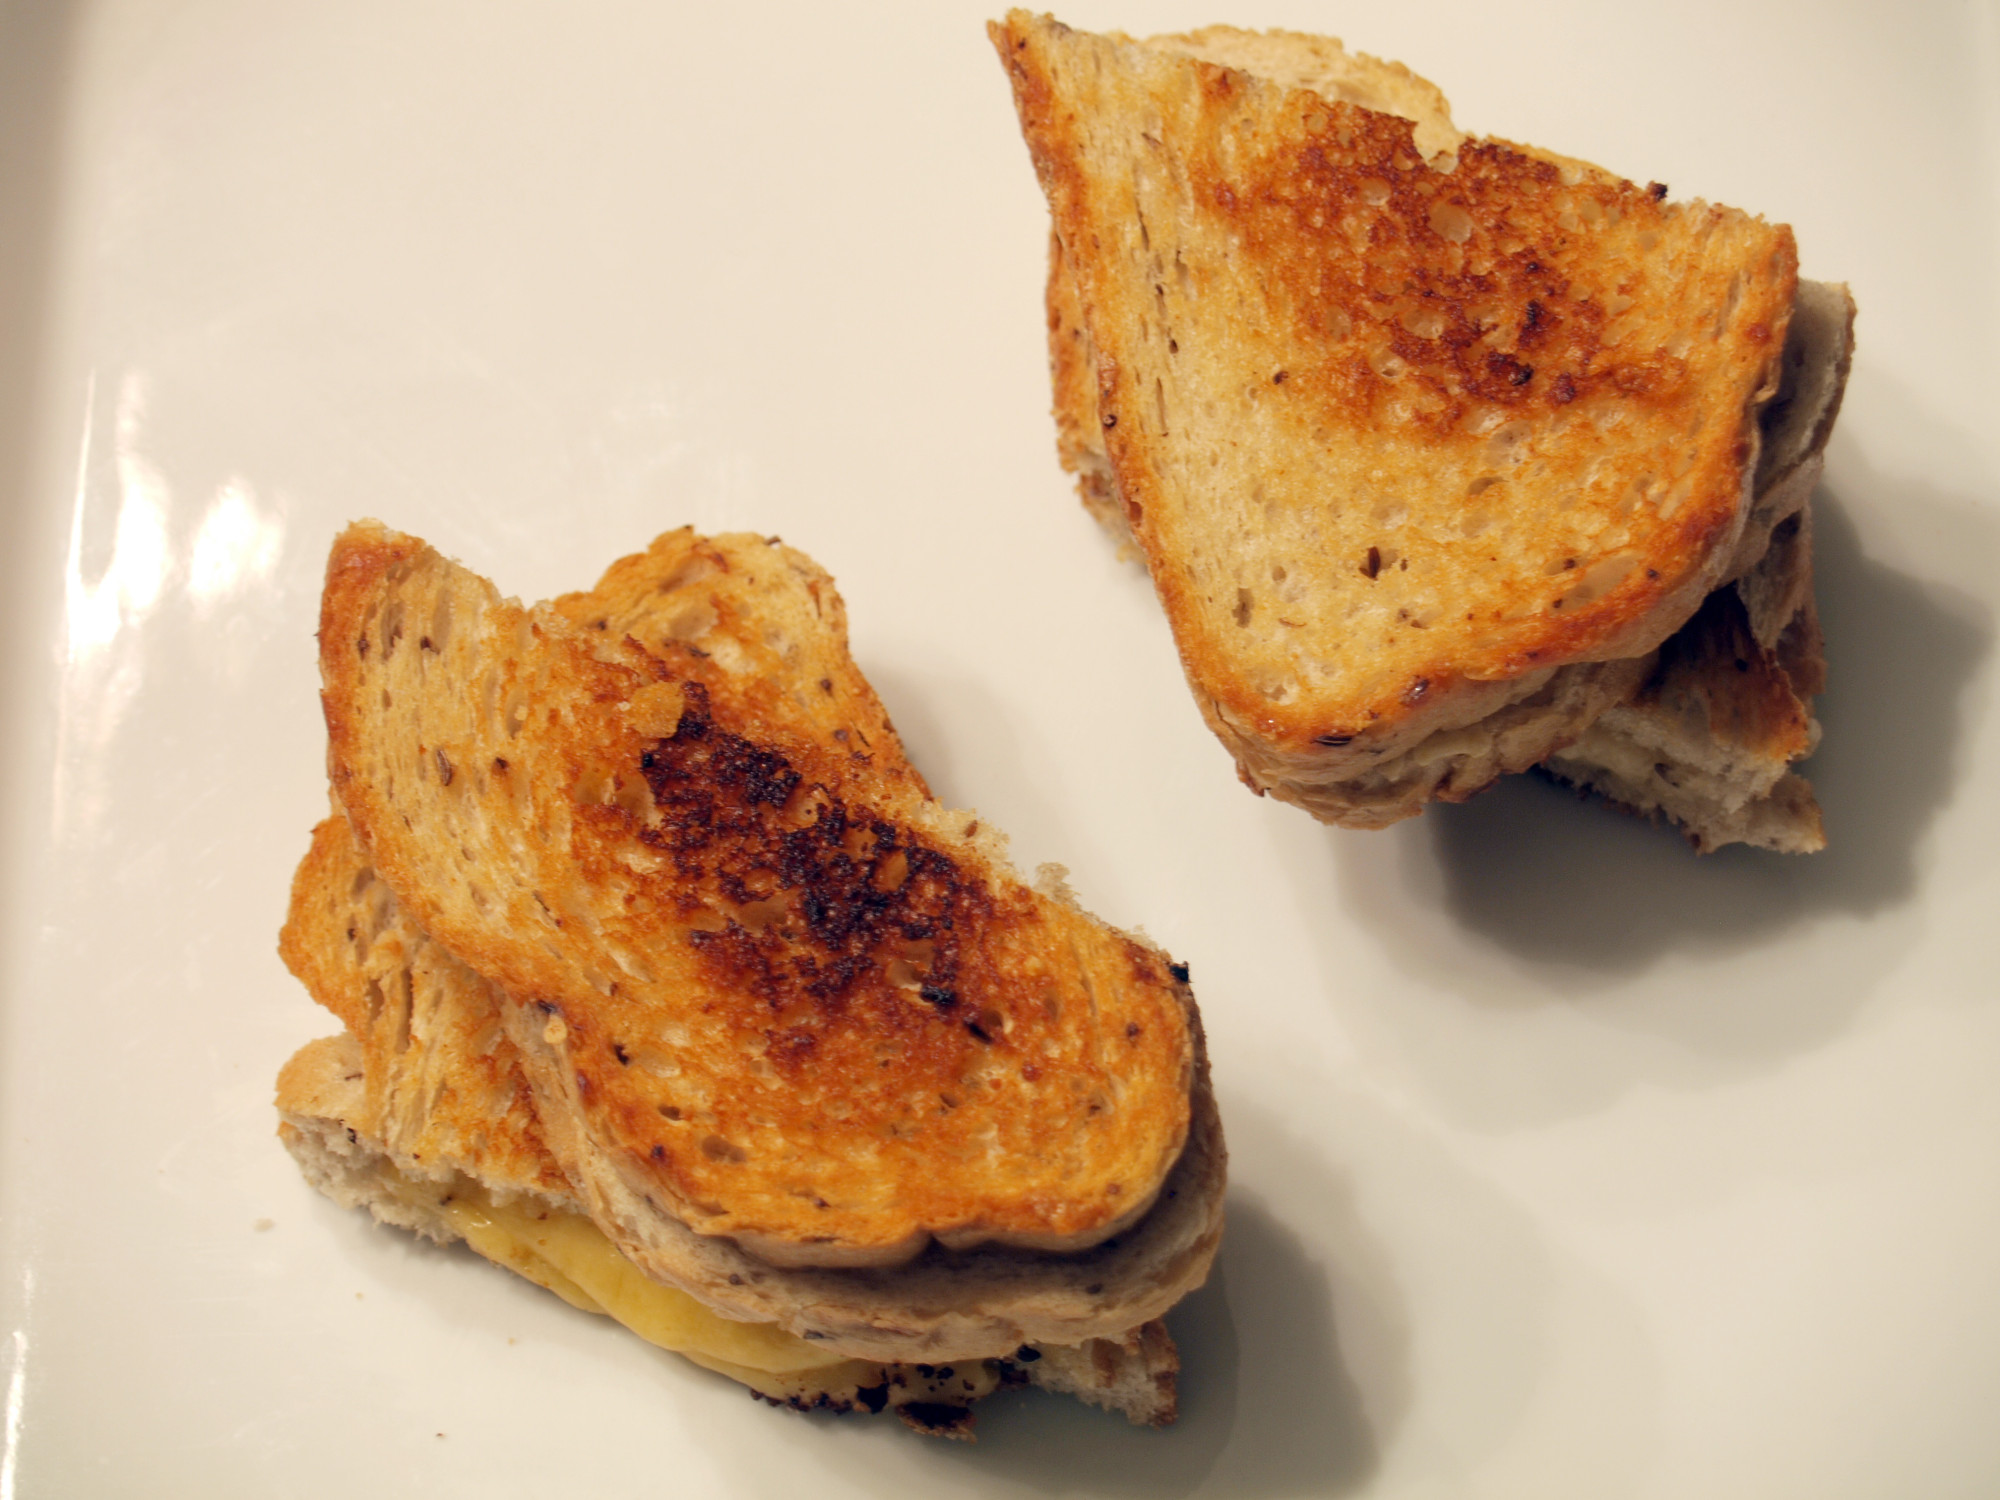 Vintage Van Gogh and Black Pepper Bellavitano Grilled Cheeses